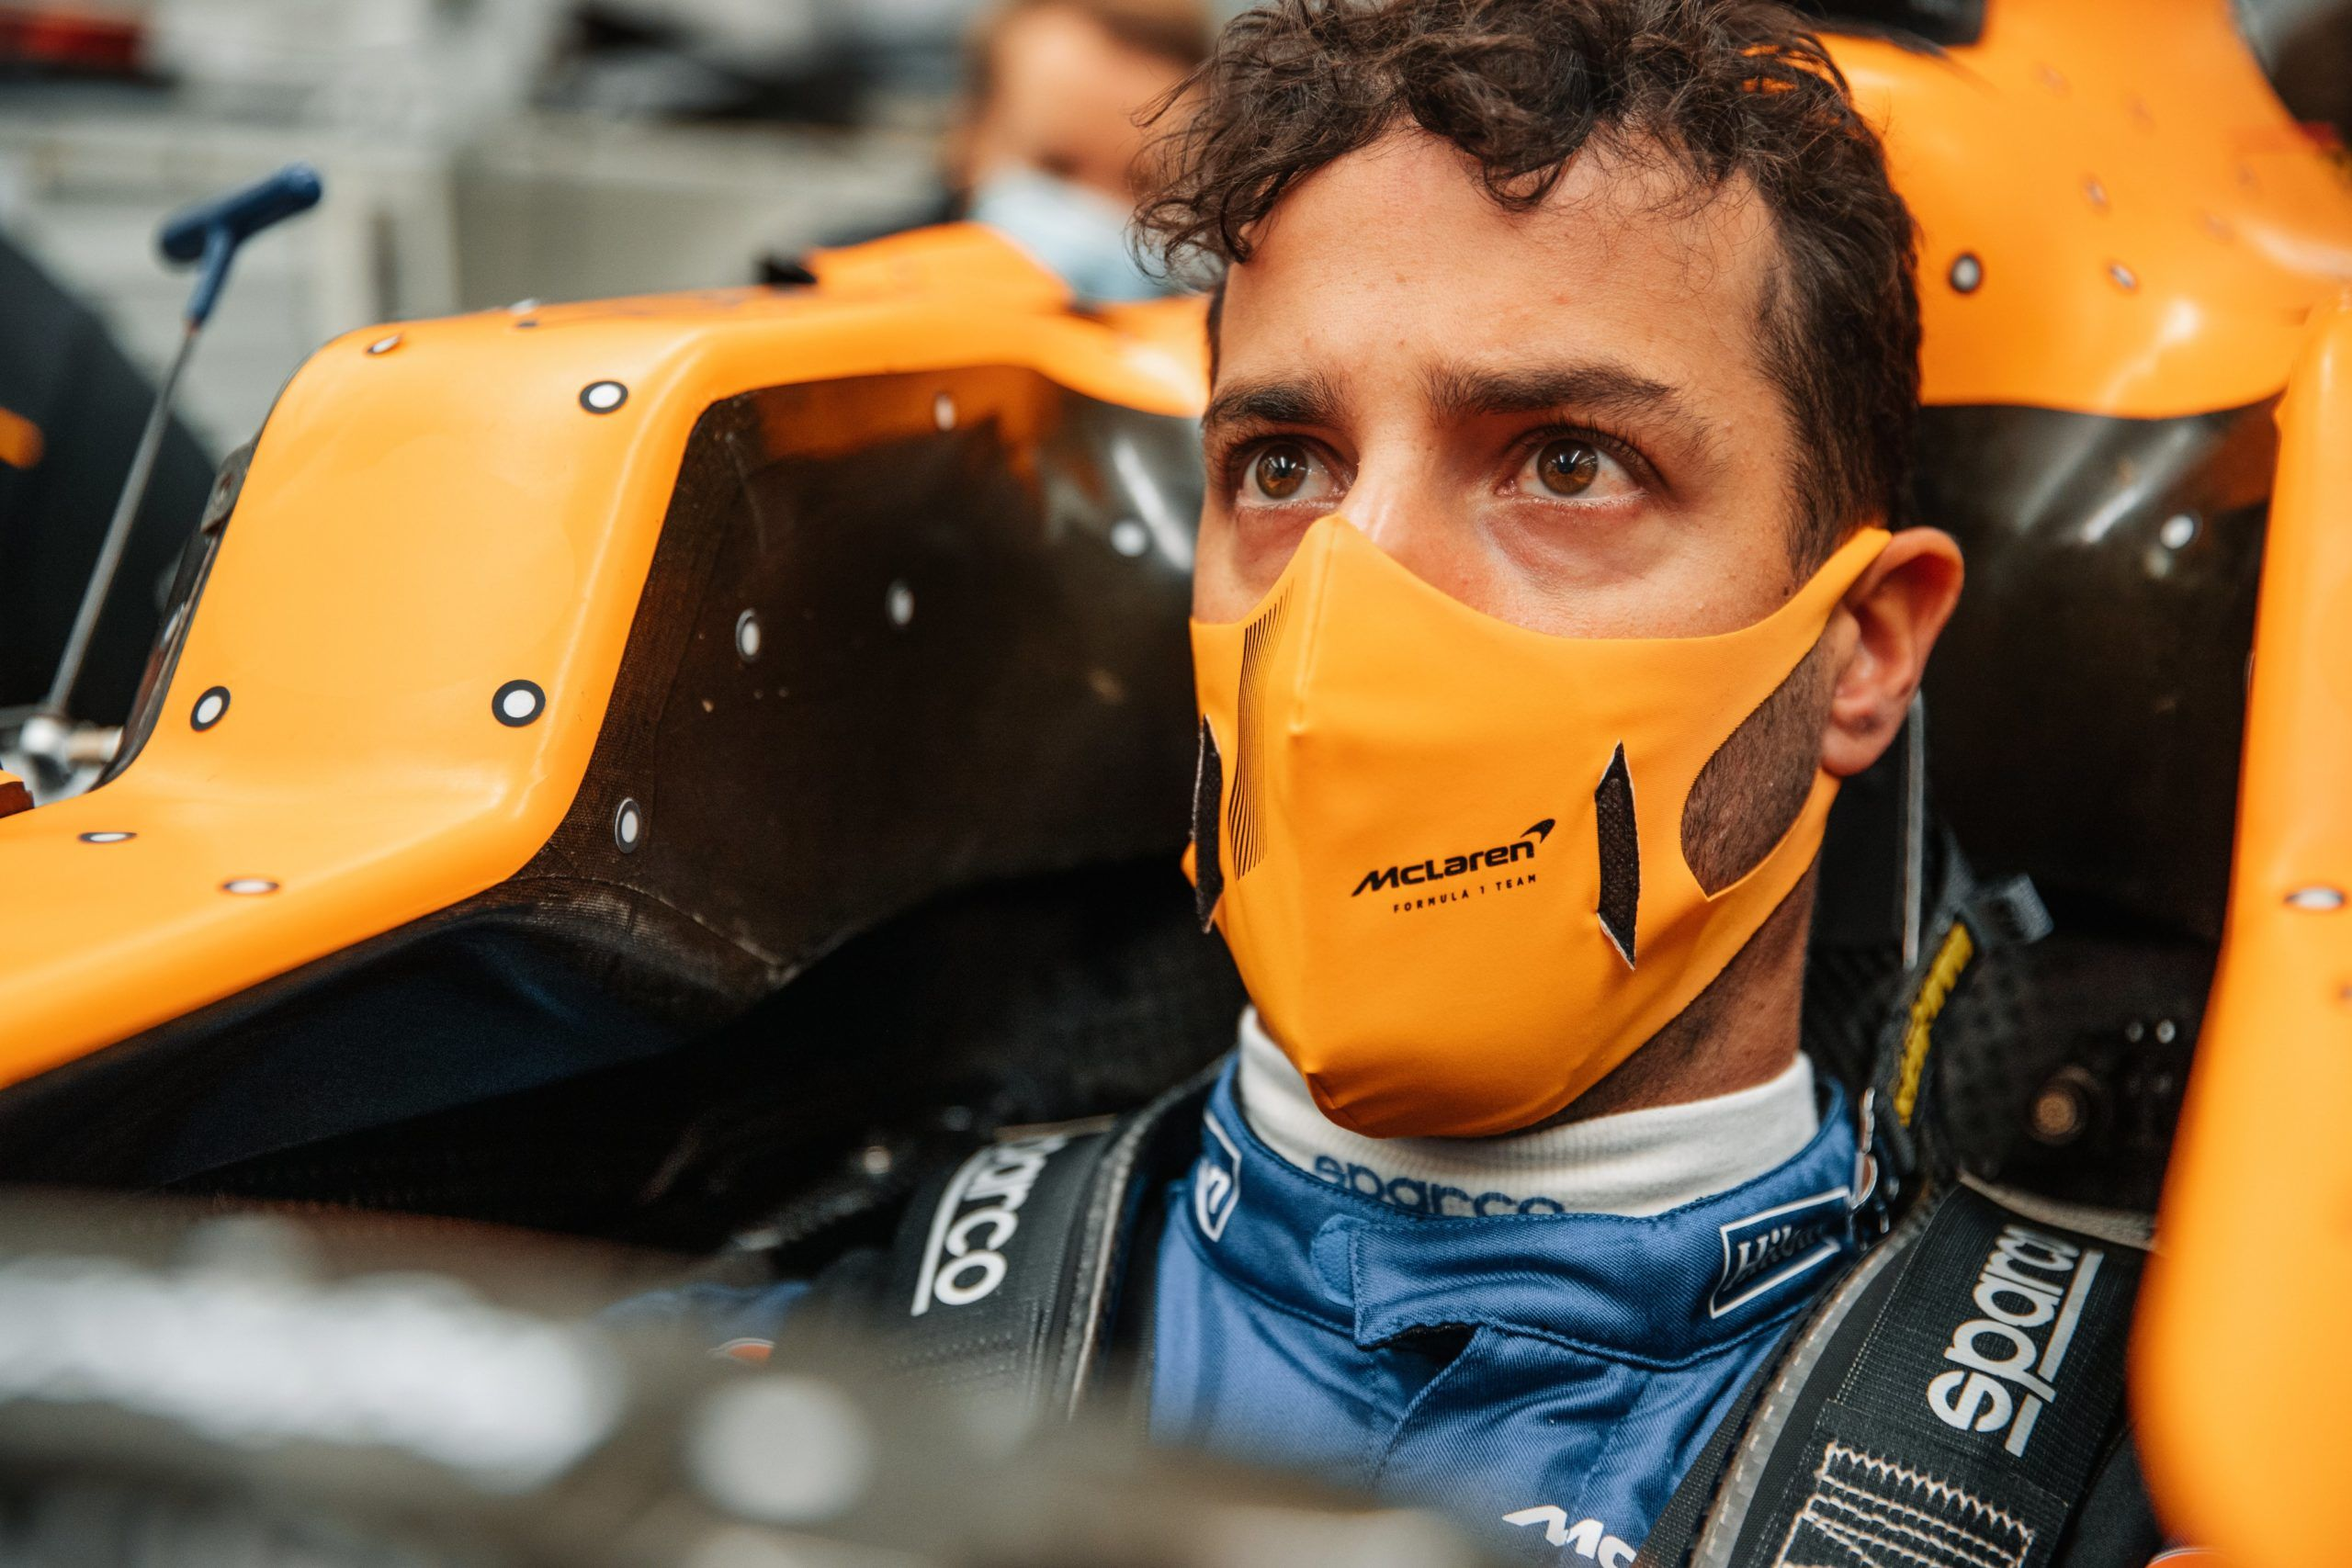 Daniel Ricciardo is still adapting to his new environment at McLaren F1 in the 2021 Formula One.